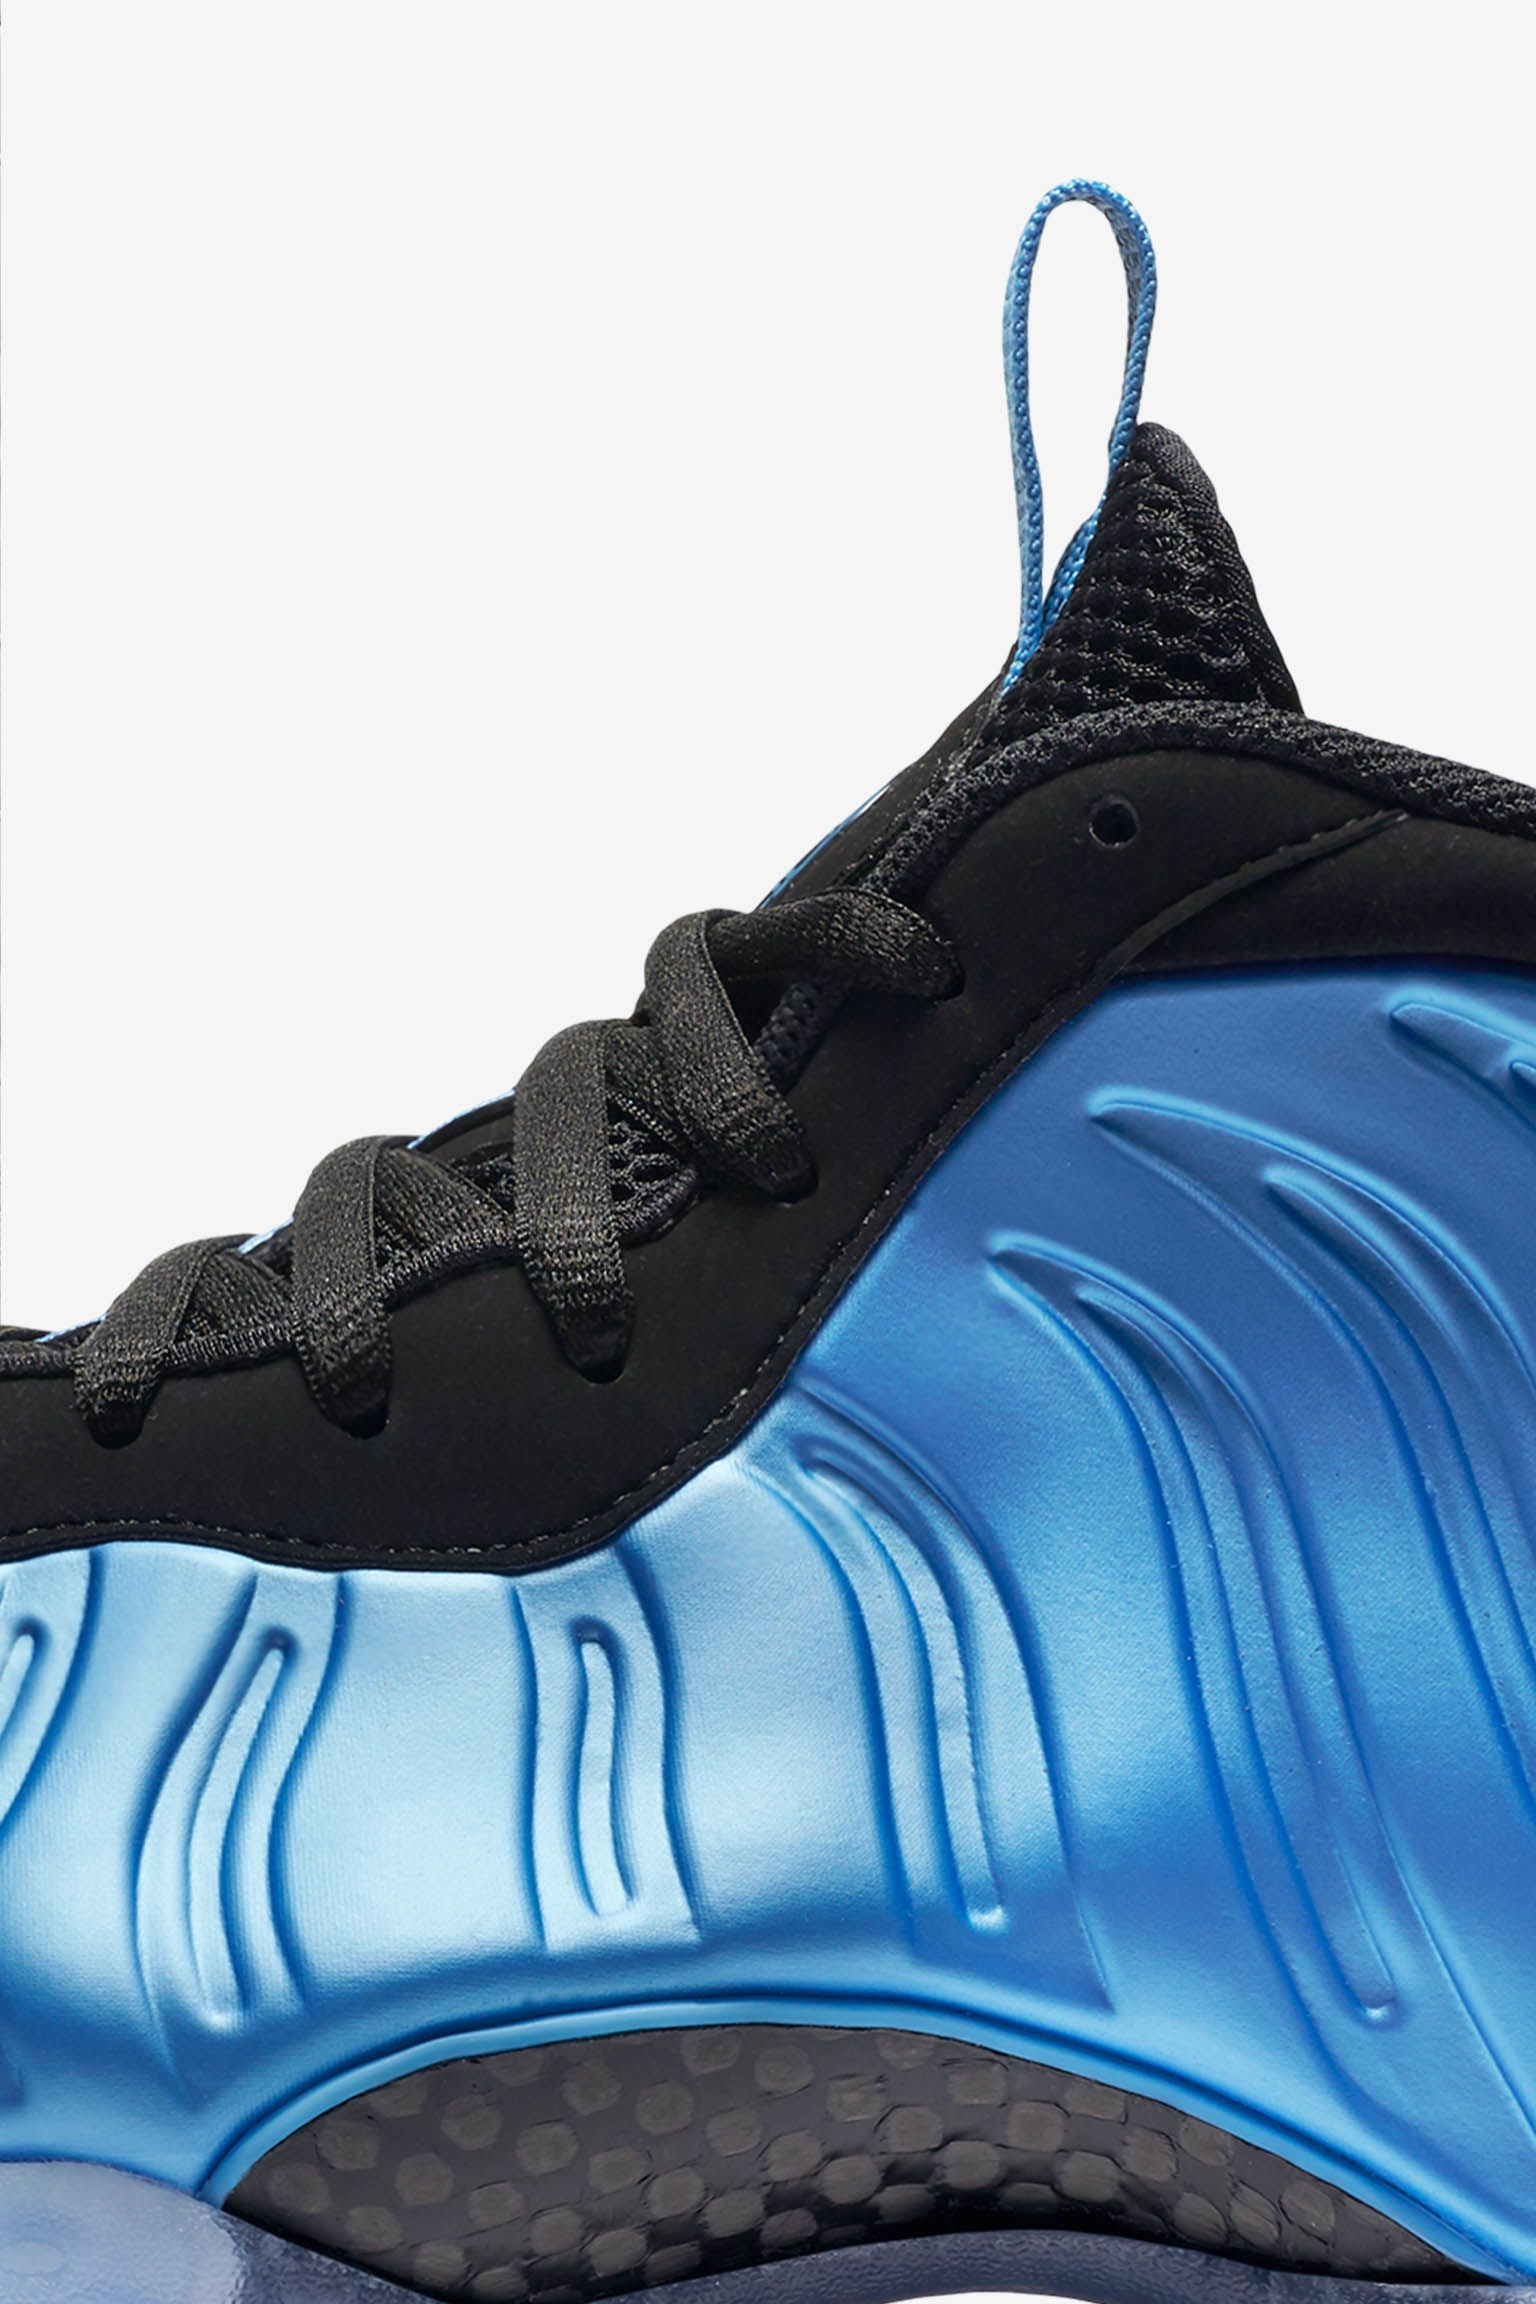 Nike Air Foamposite One 'University Blue' Release Date